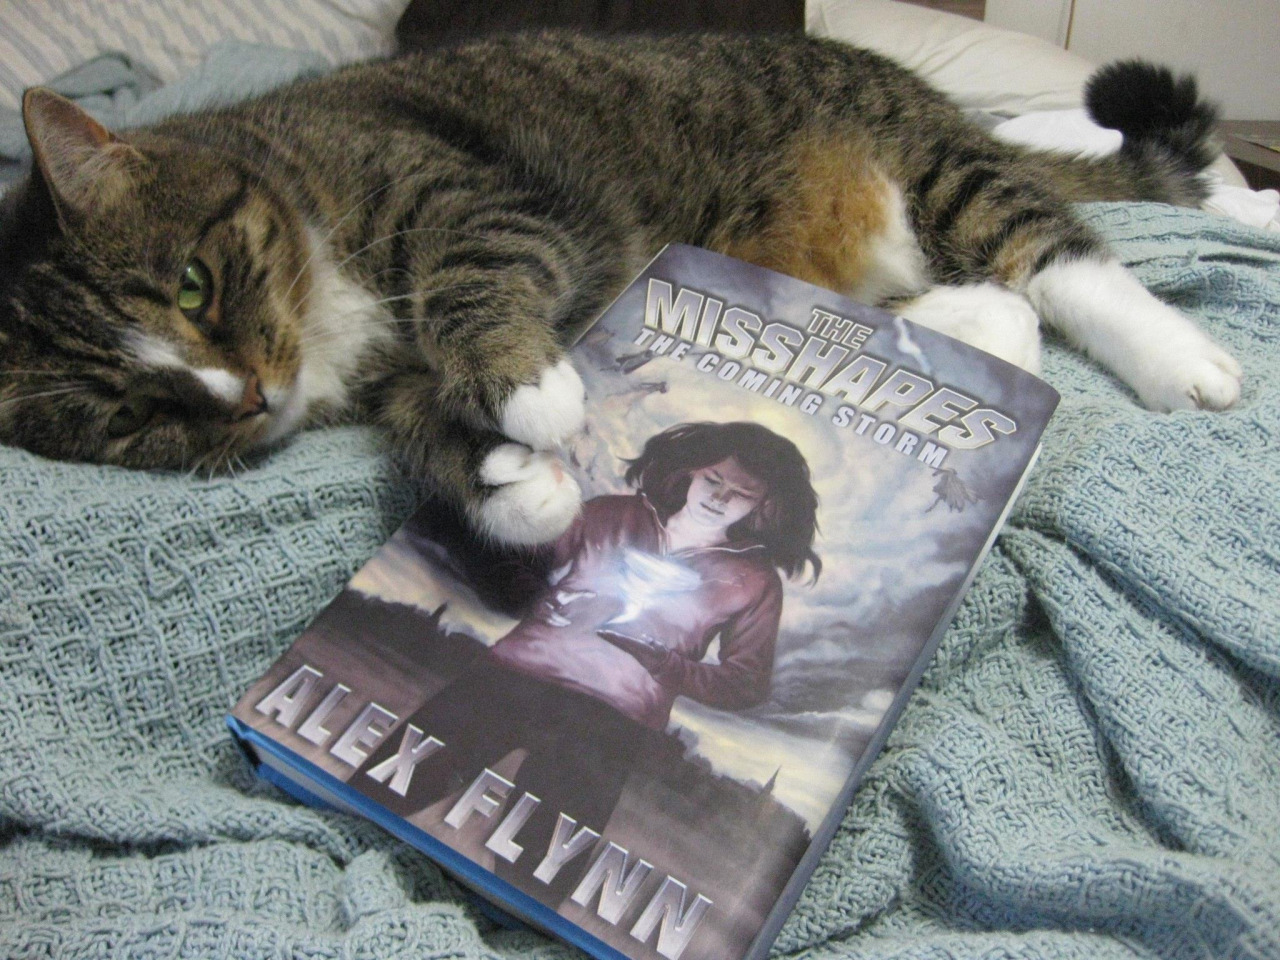 Today's a really special and exciting day.  The Misshapes  is now available in hardcover!  My cat is celebrating!  It's been a long journey for these little superheroes-that-could, and I'd be honored if you got the chance to read it. If you feel like requesting it from your local library that would be the biggest honor of all!    It should be available at your finer booksellers; if not, you can order it. Here's the online details so you could have it right this second!     You can order THE MISSHAPES: The Coming Storm in hardcover   Barnes & Noble: http://www.barnesandnoble.com/w/the-misshapes-a…/1118590464…  Amazon: http://www.amazon.com/The-Misshapes-Alex-Flynn/dp/1940610311  Indiebound: http://www.indiebound.org/book/9781940610313    As well as eBook Kindle: http://www.amazon.com/Misshapes-Ale…/…/ref=tmm_kin_swatch_0…  Nook: http://www.barnesandnoble.com/w/the-misshapes-a…/1118590464…  iBooks: https://itunes.apple.com/us/book/the-misshapes/id800927901…  Kobo: http://store.kobobooks.com/en-US/ebook/the-misshapes-1  Google Play: https://play.google.com/…/books/d…/Alex_Flynn_The_Misshapes…